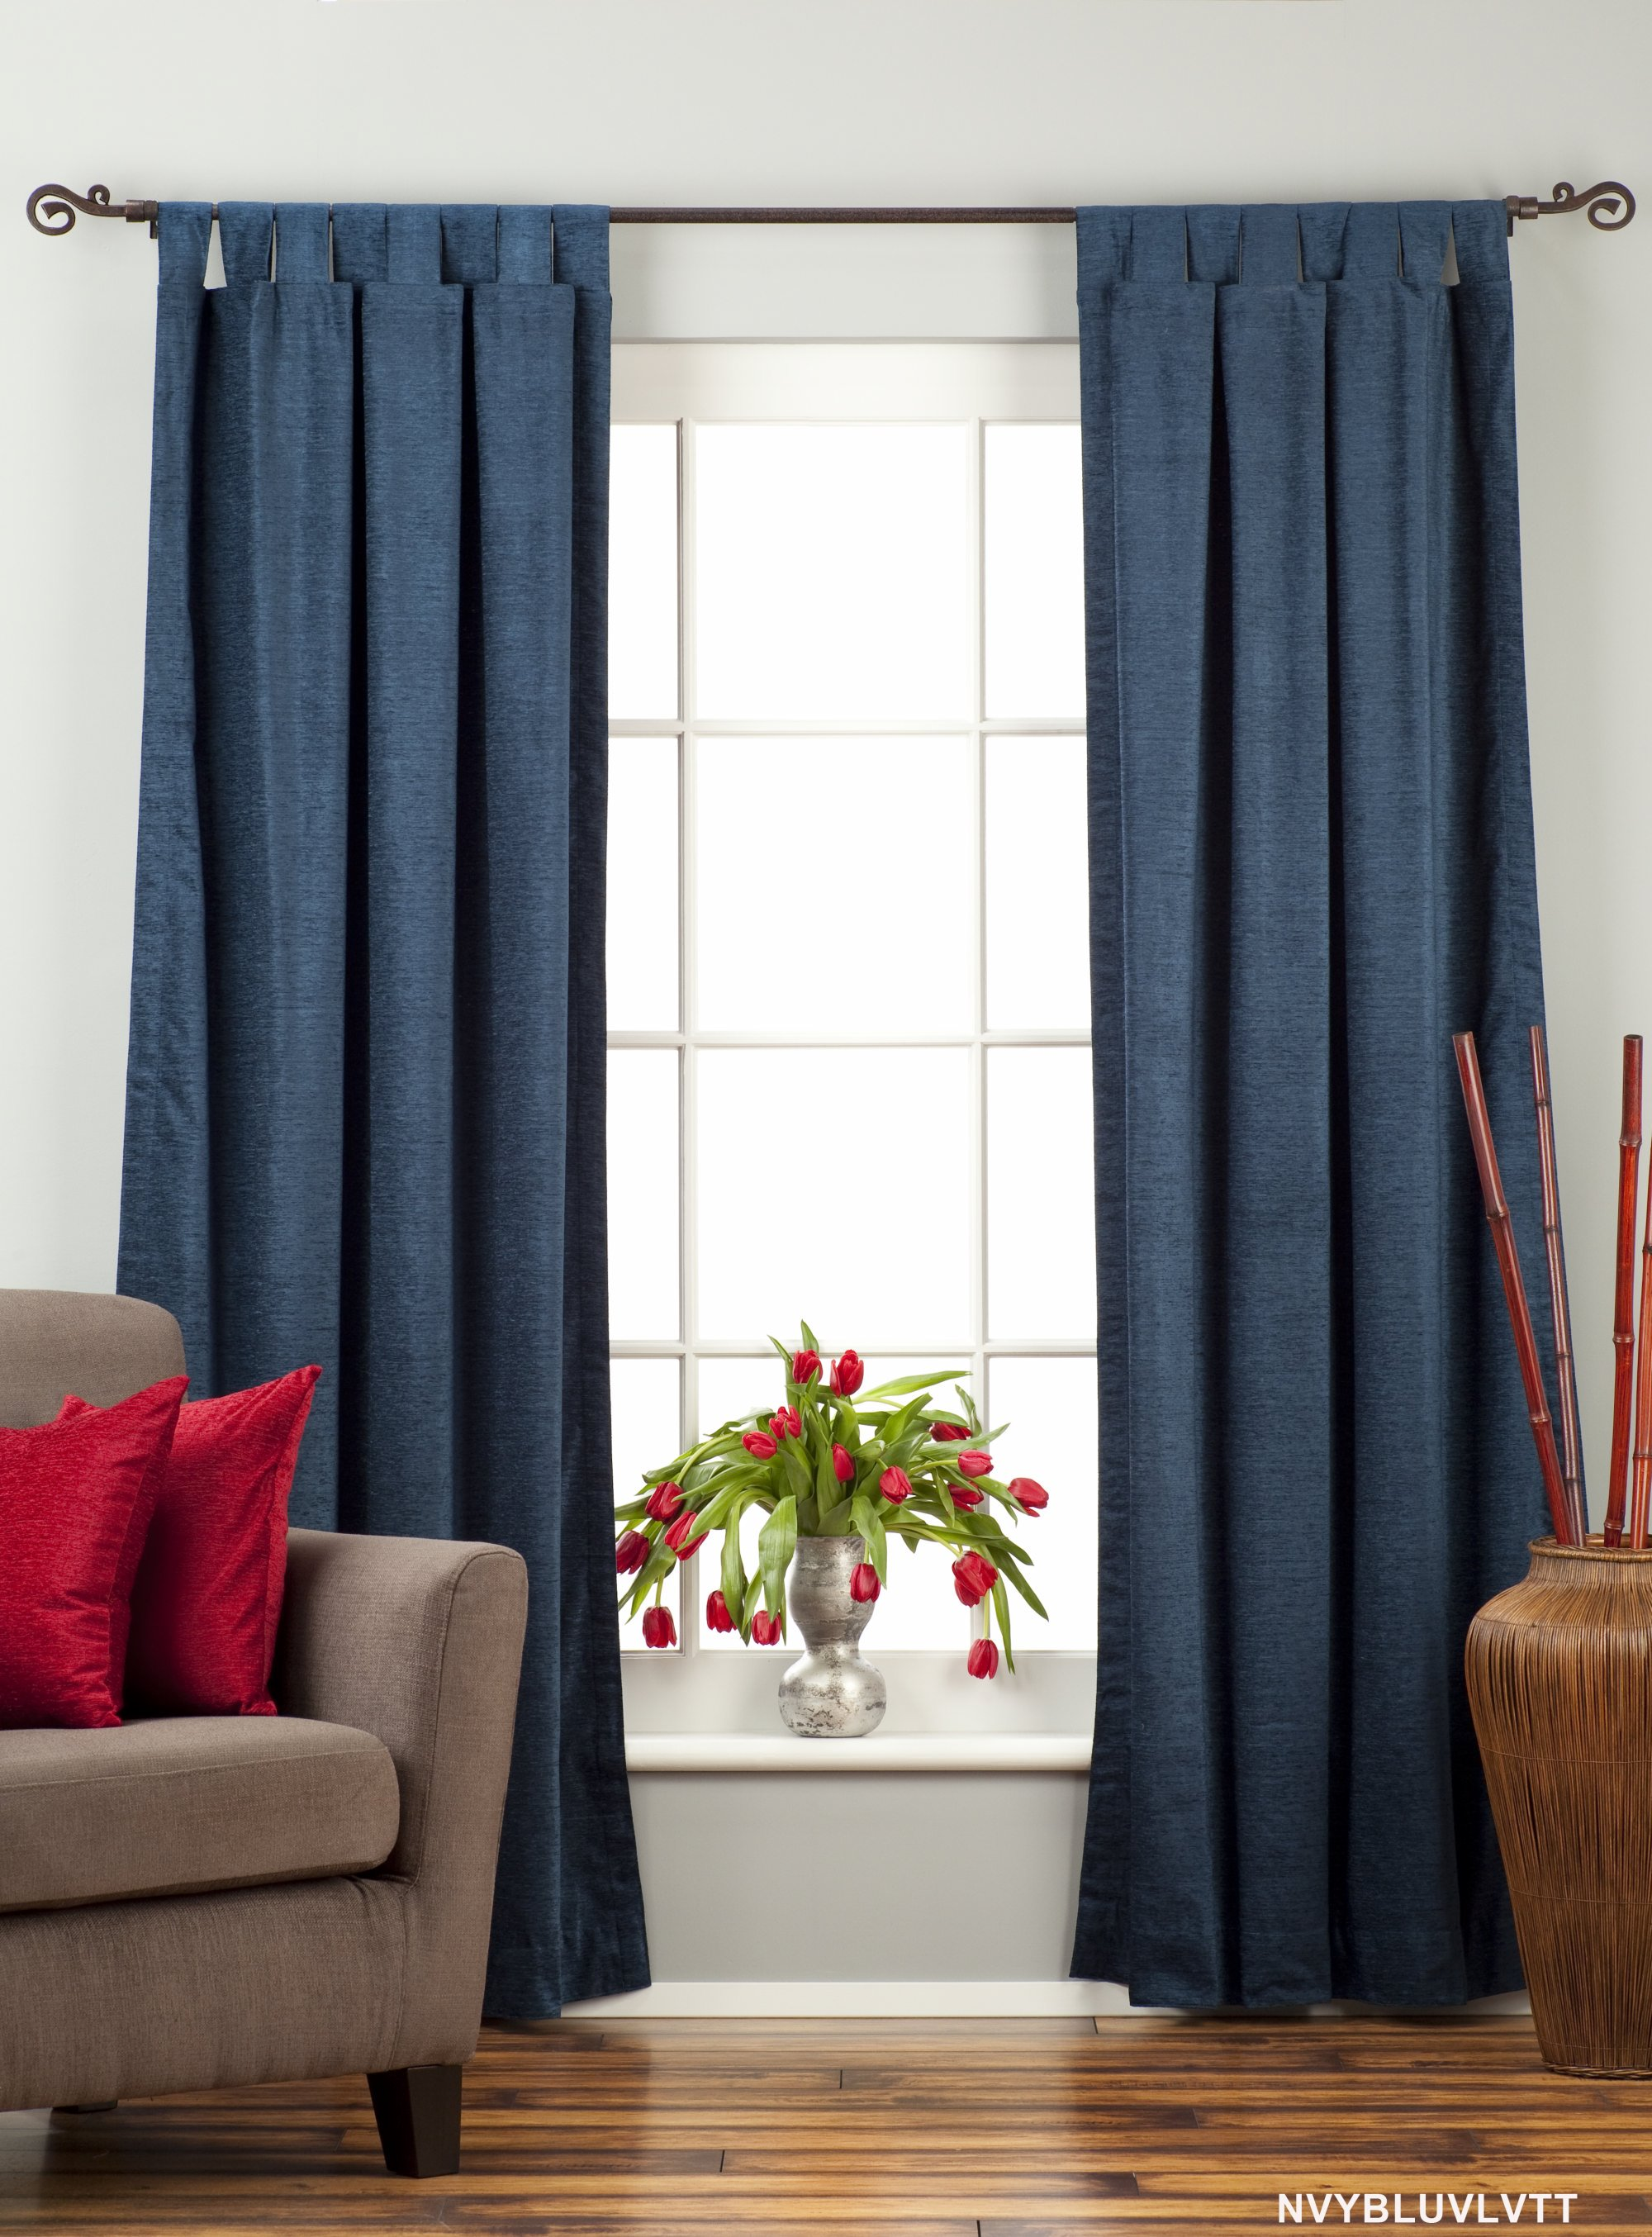 Drapes Curtains Blue House Home